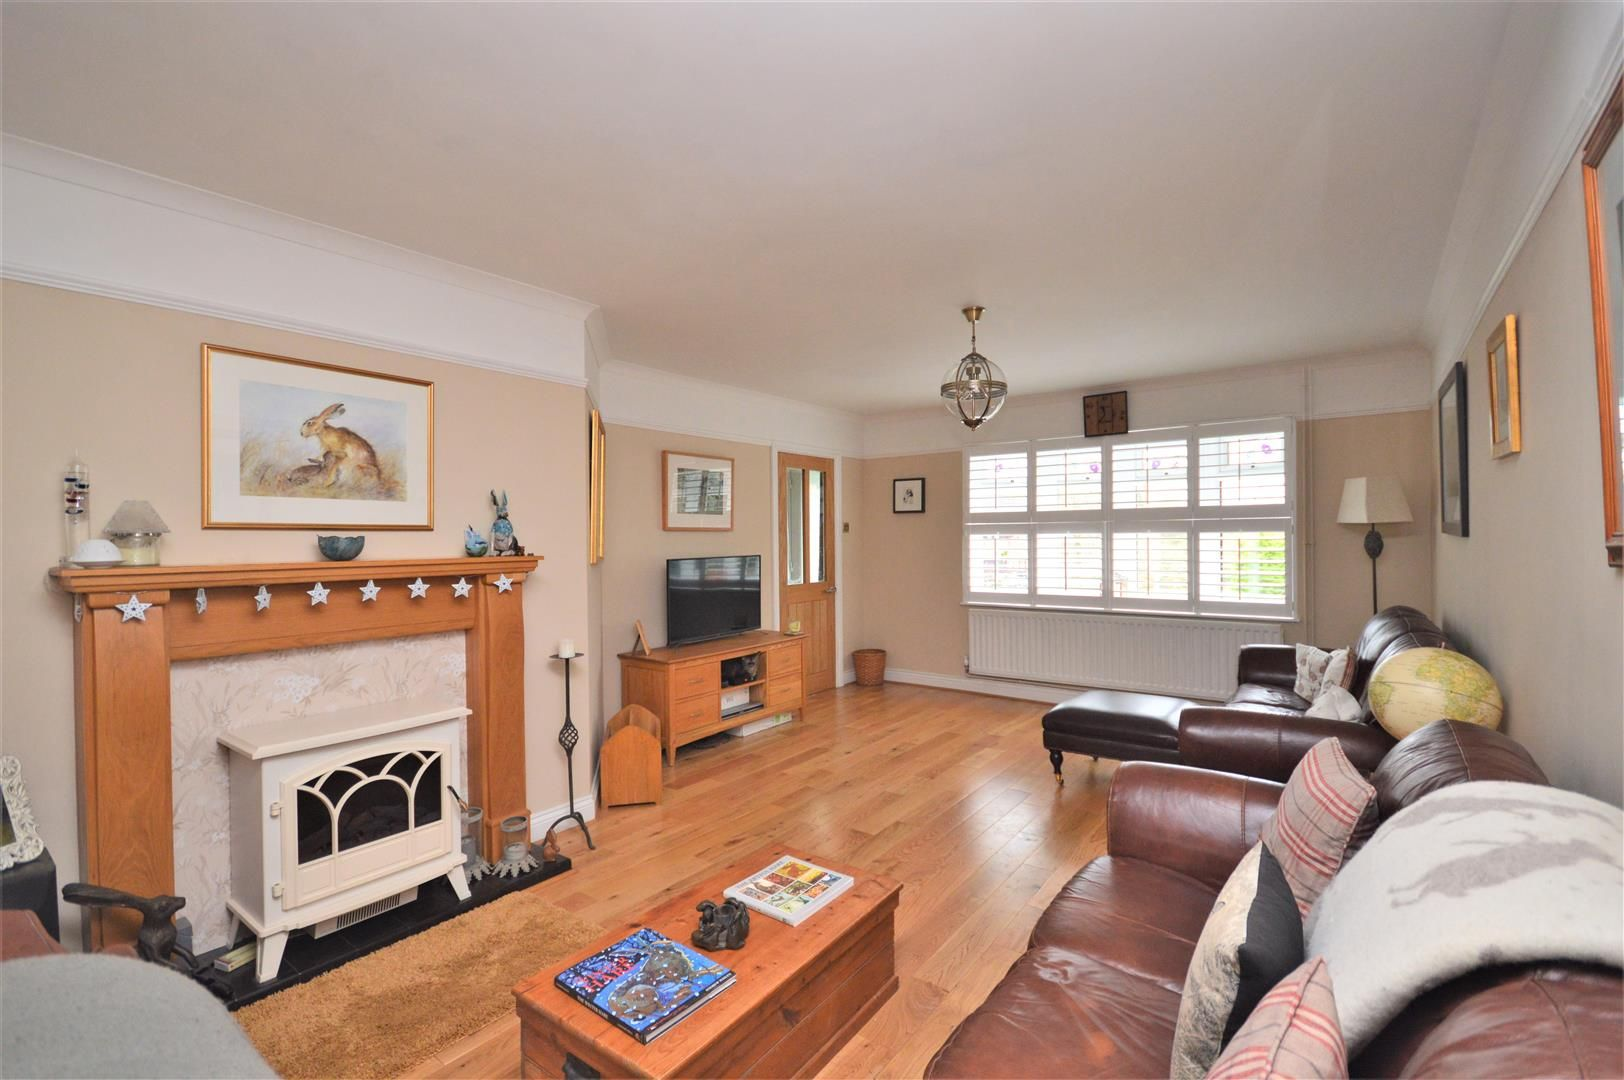 4 bed detached for sale in Kings Caple, HR1